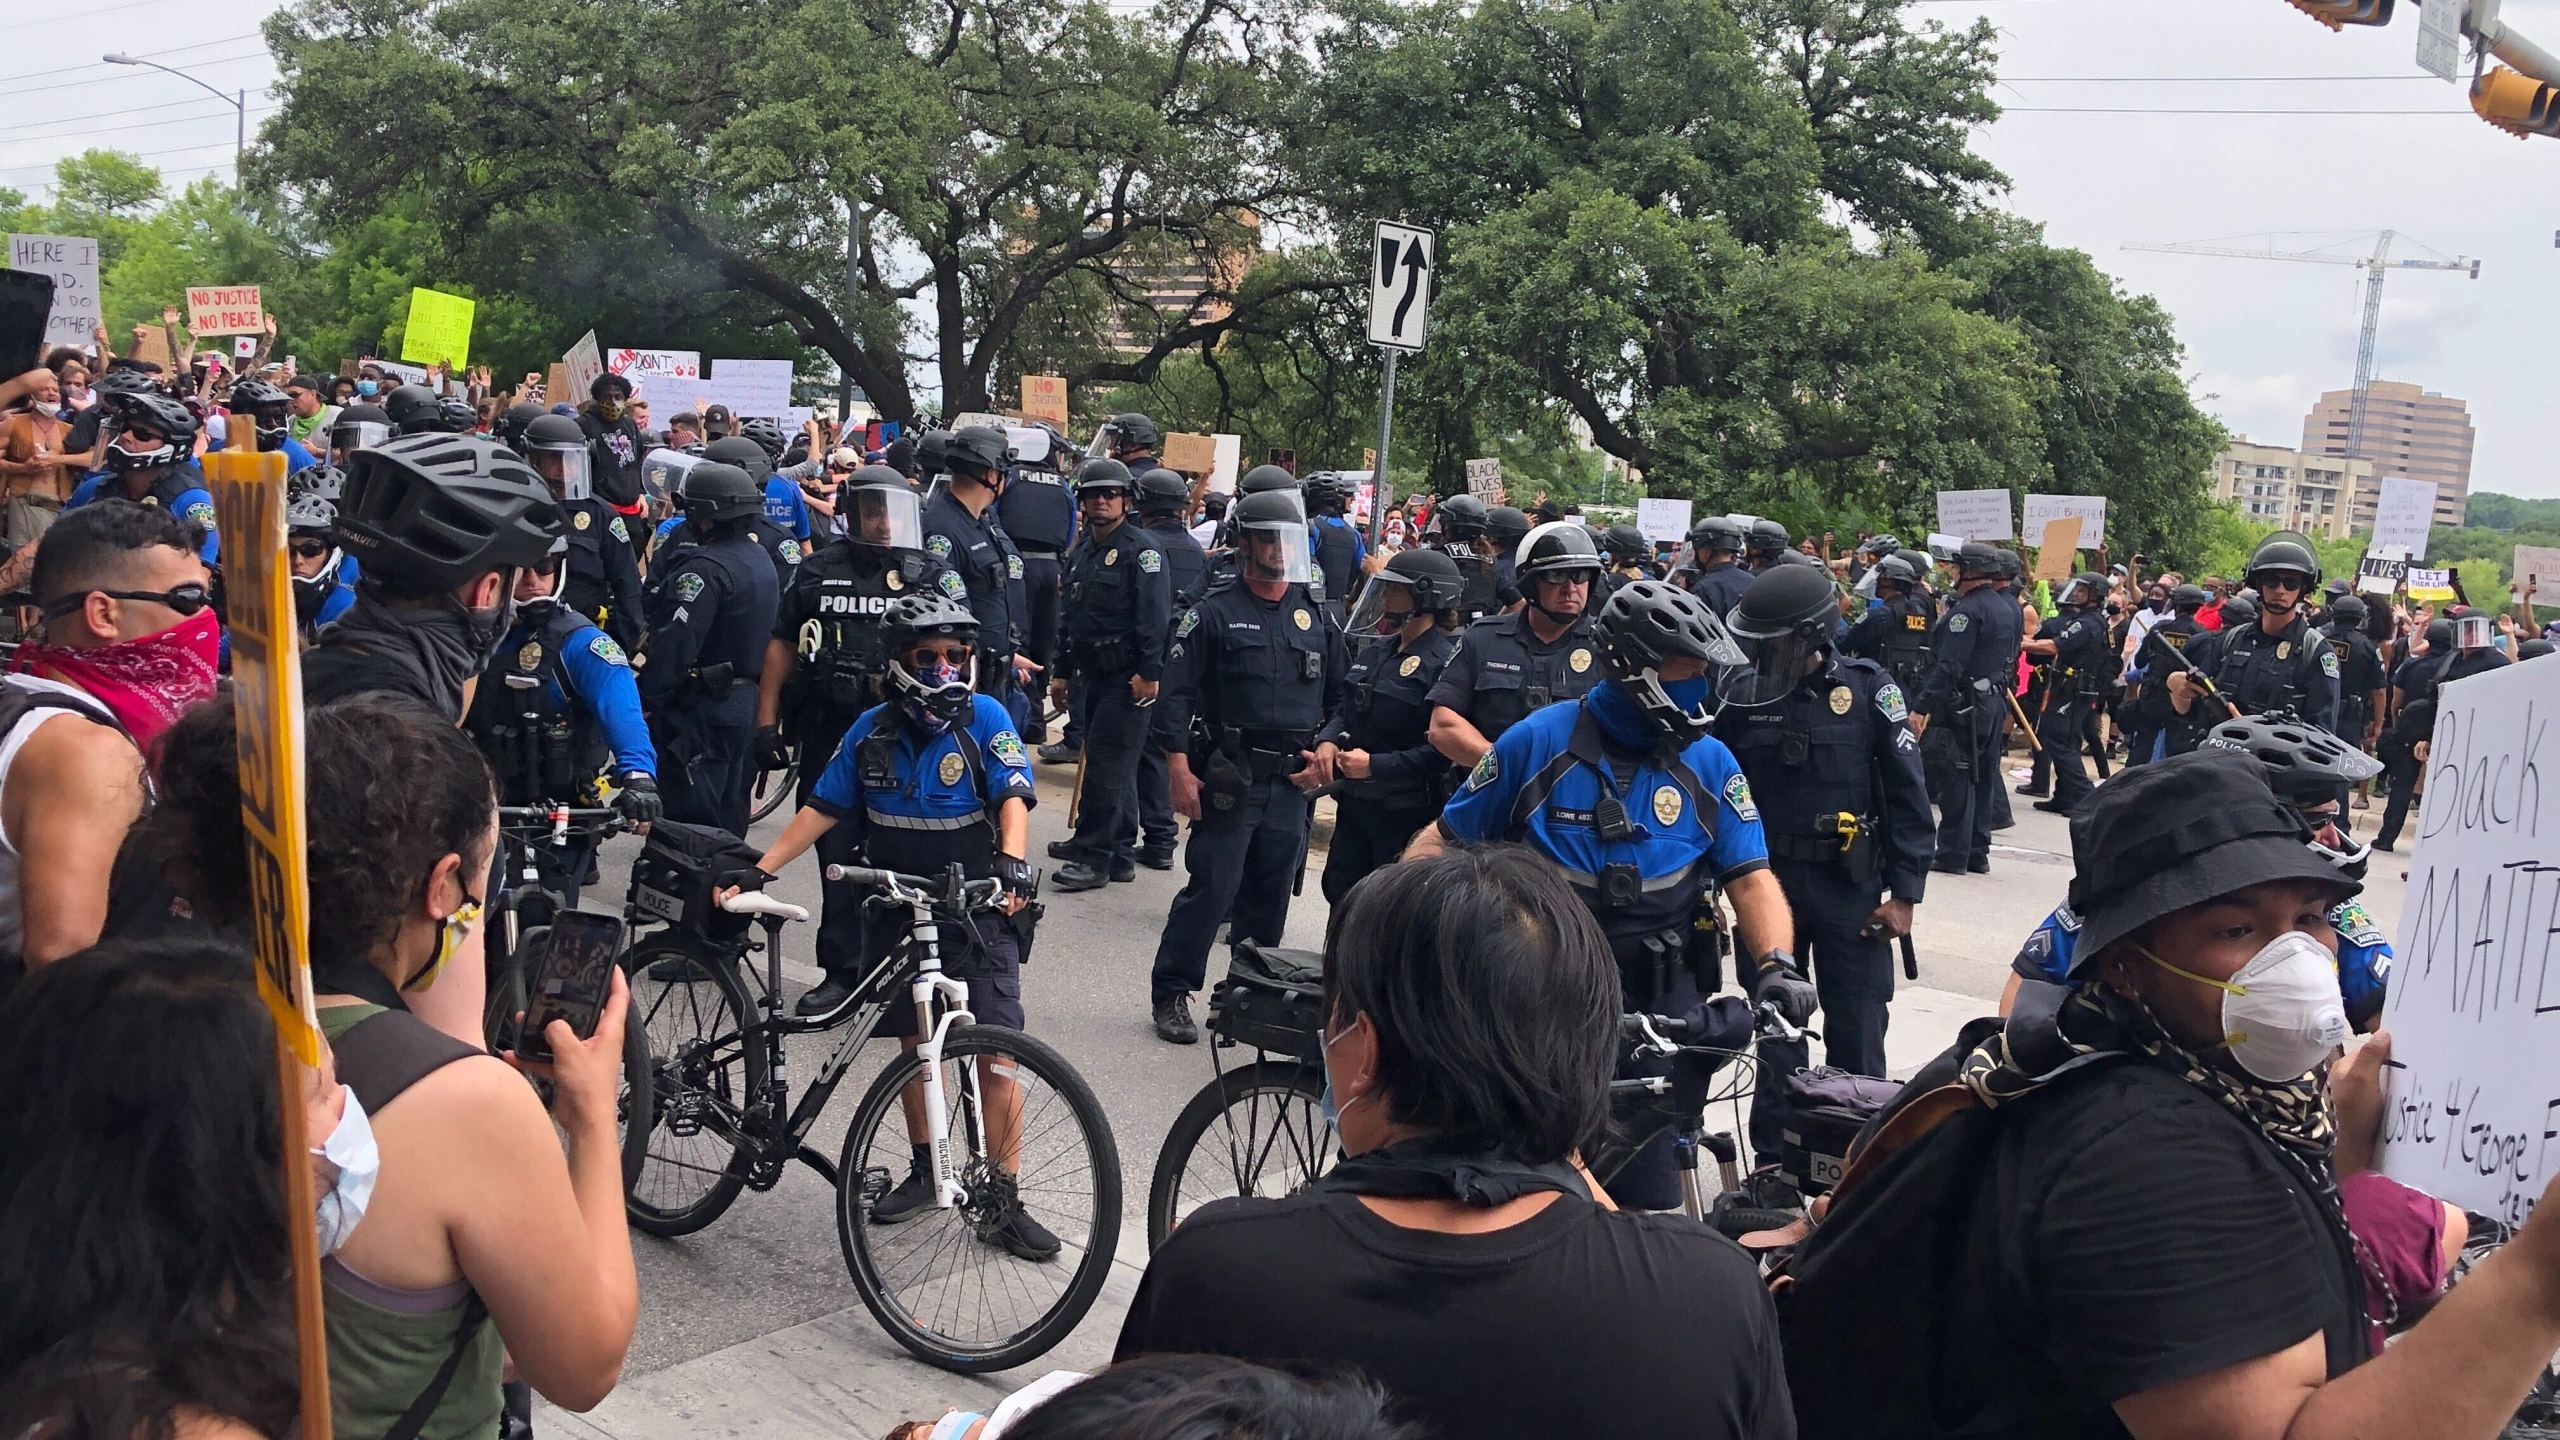 Scene from Austin protests 5-31-20